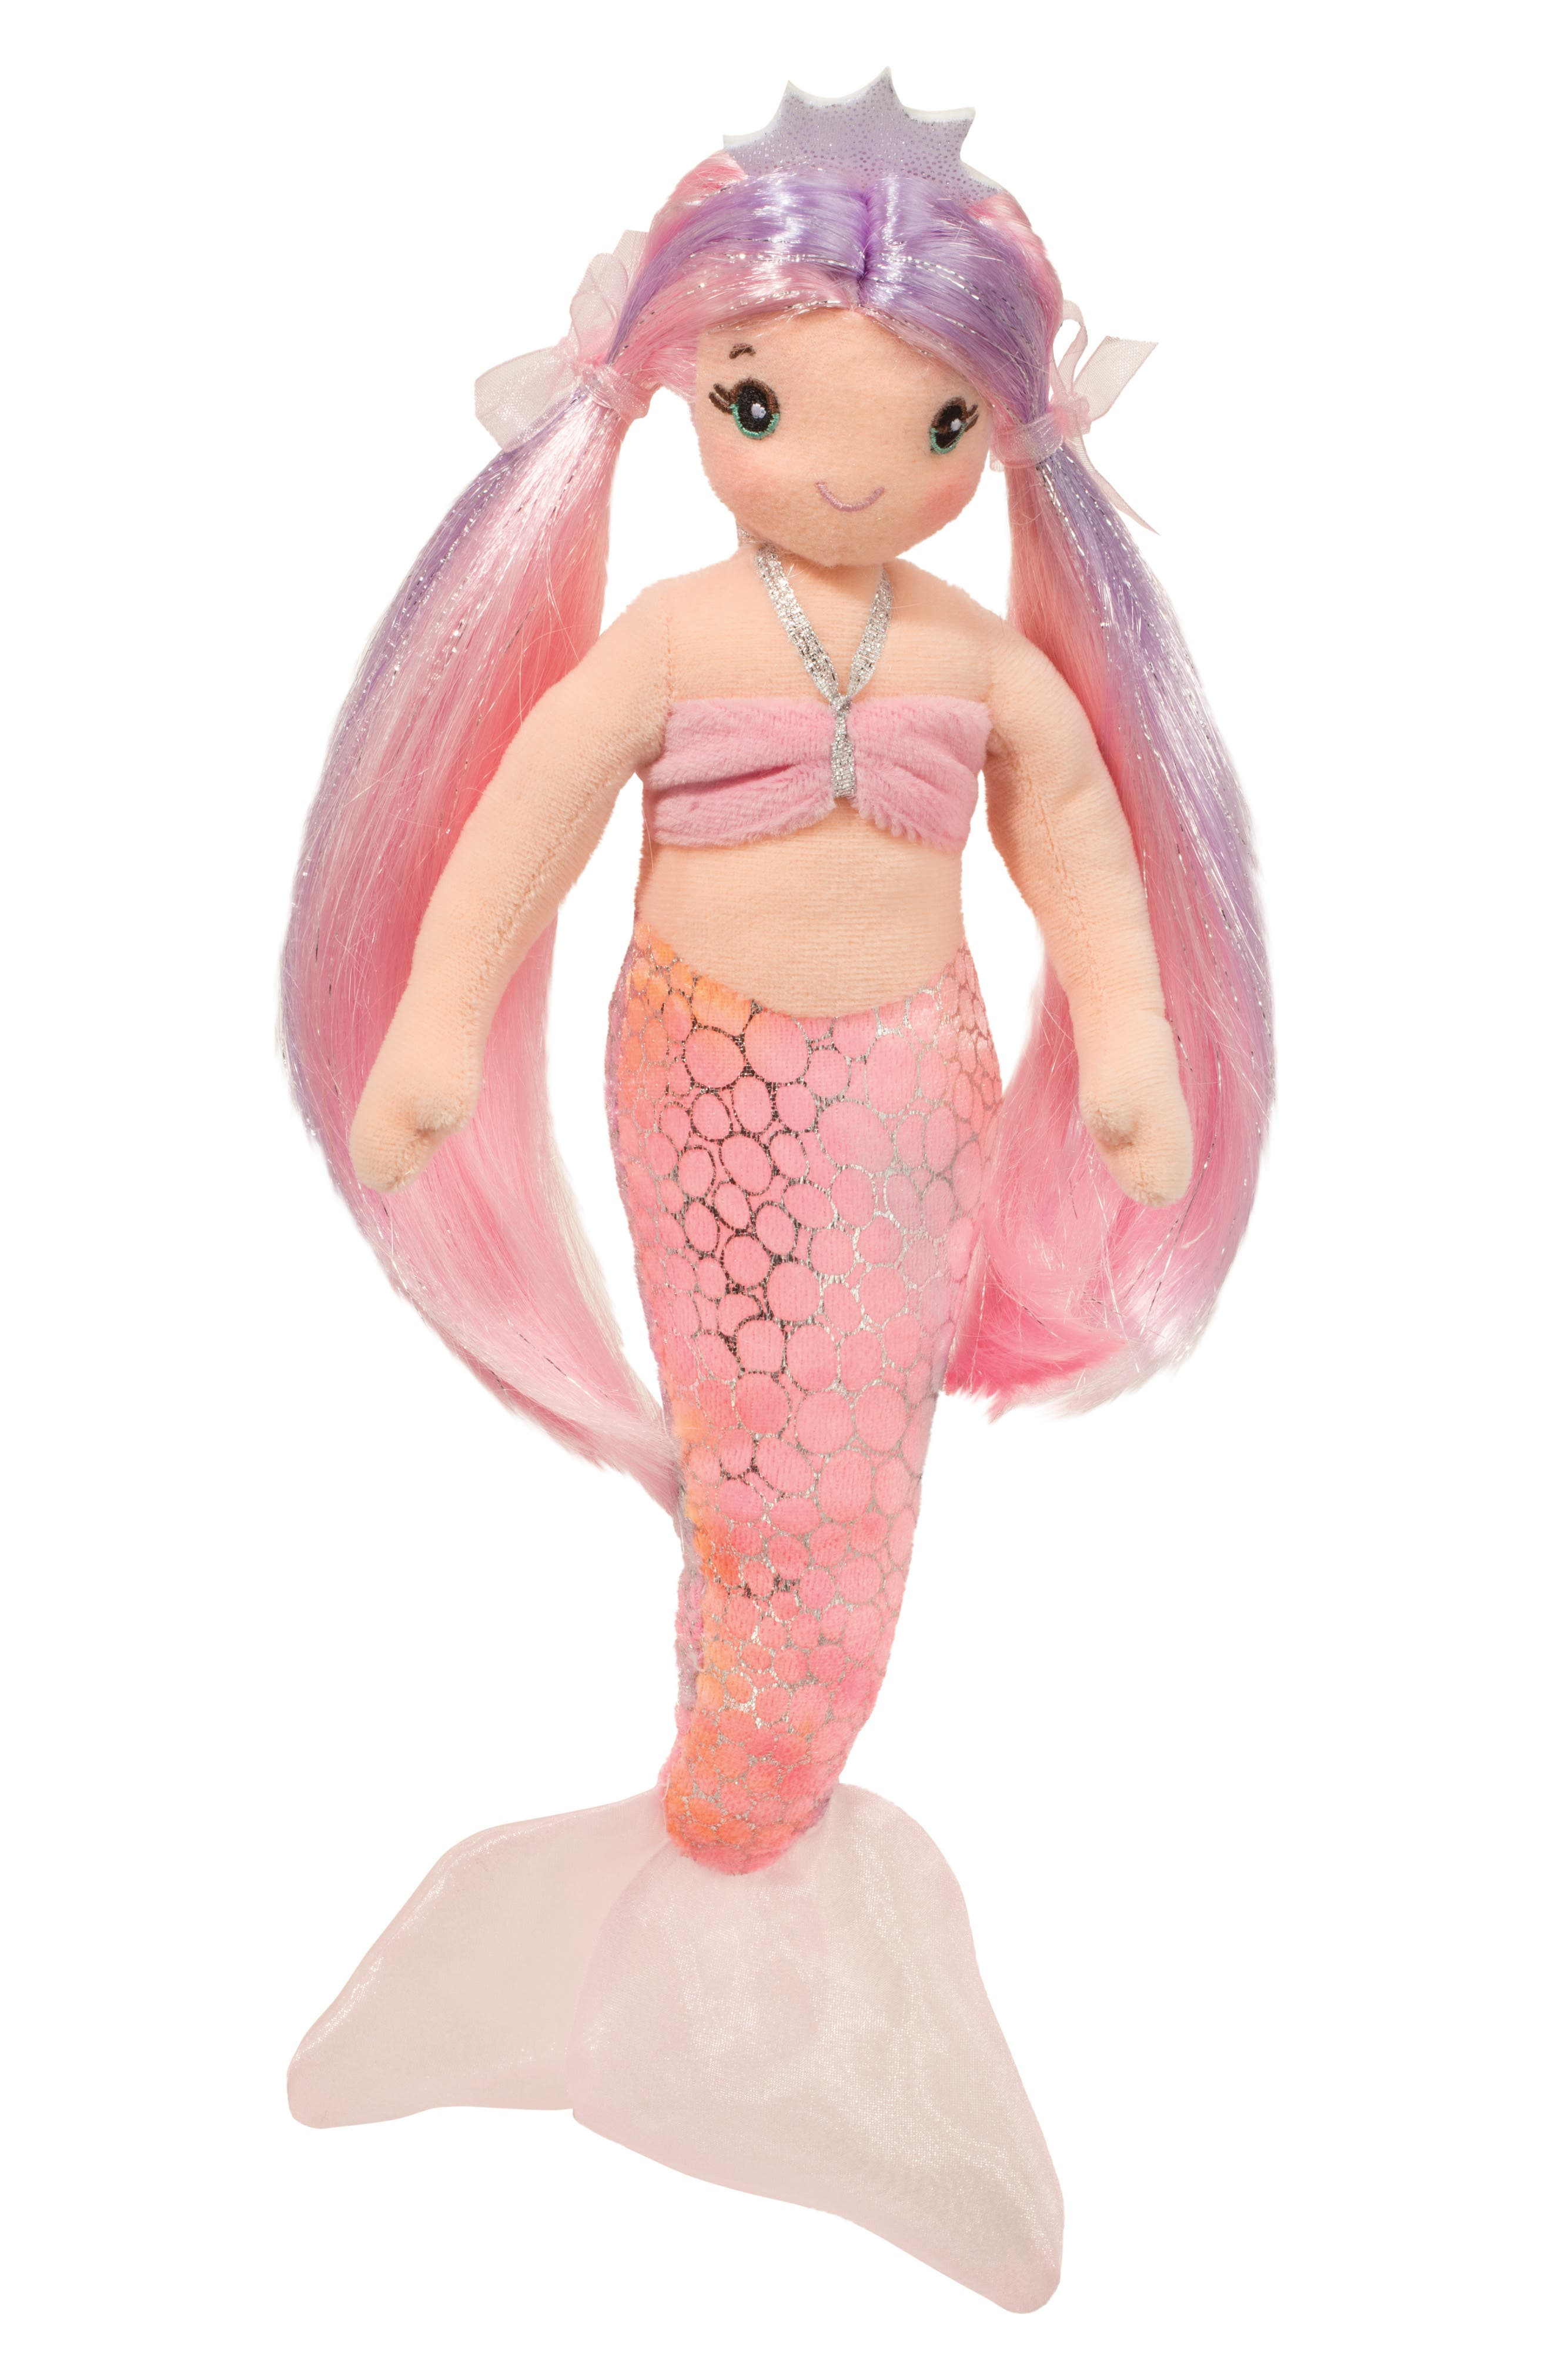 Douglas Serena Pink Mermaid Doll